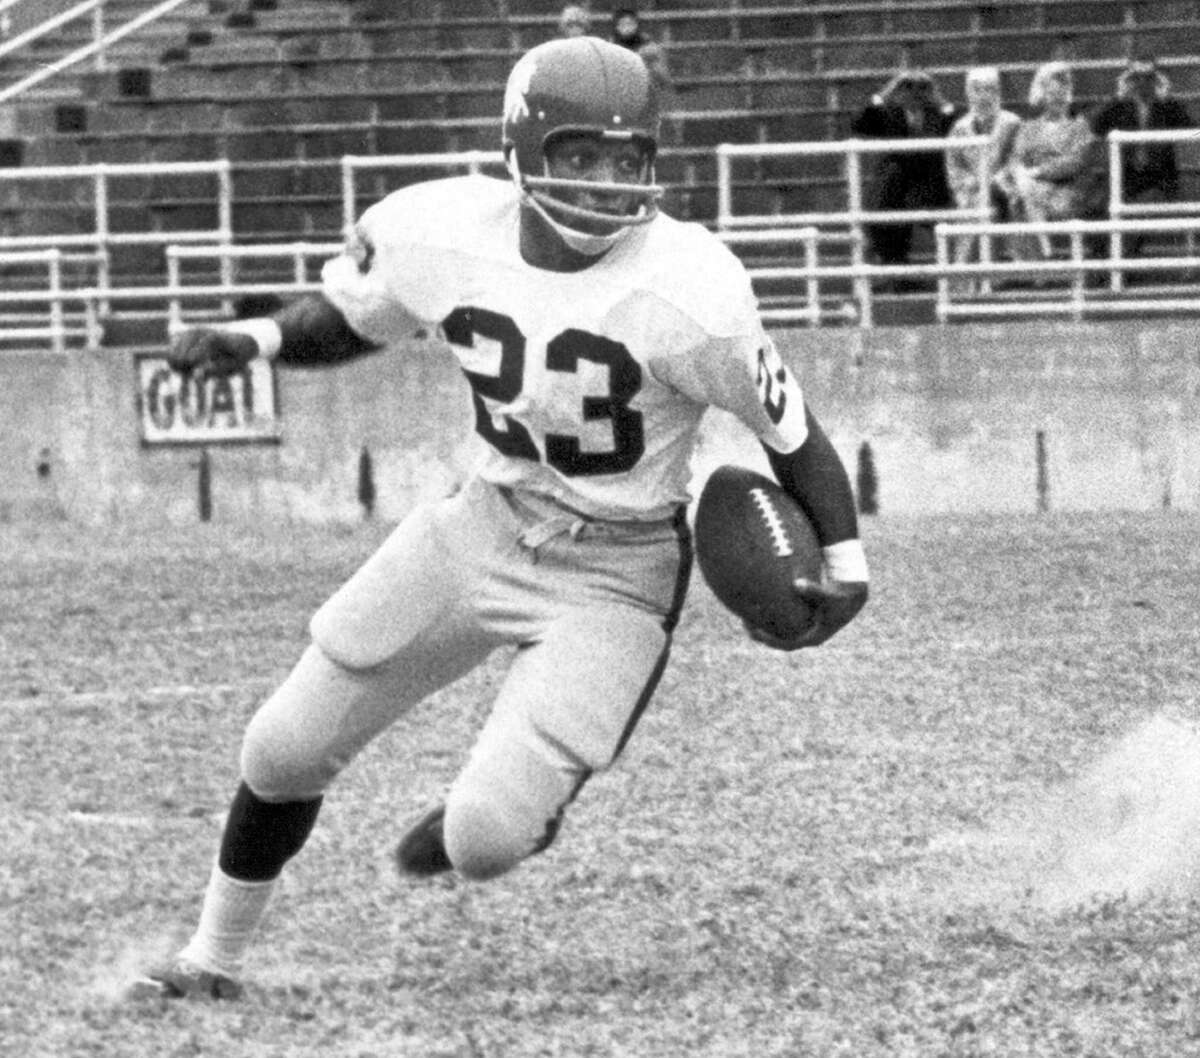 Jerry LeVias (#23) of the Southern Methodist Mustangs turns upfield during a circa 1960s game. LeVias played for Southern Methodist from 1965-67.